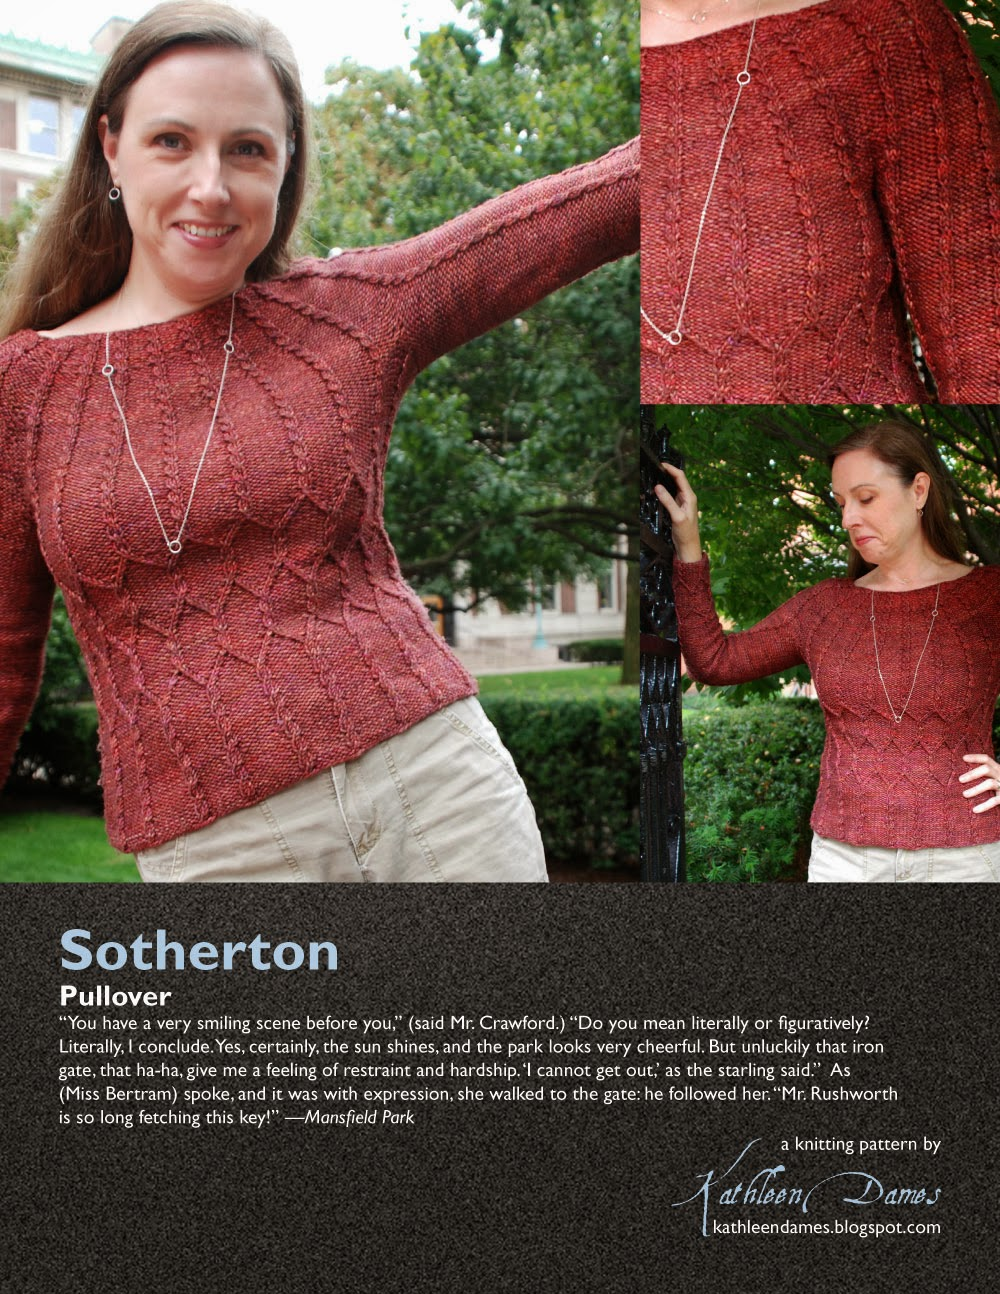 Jane Austen Knitting Patterns : kathleen dames: Jane Austen Knits patterns now on Ravelry!